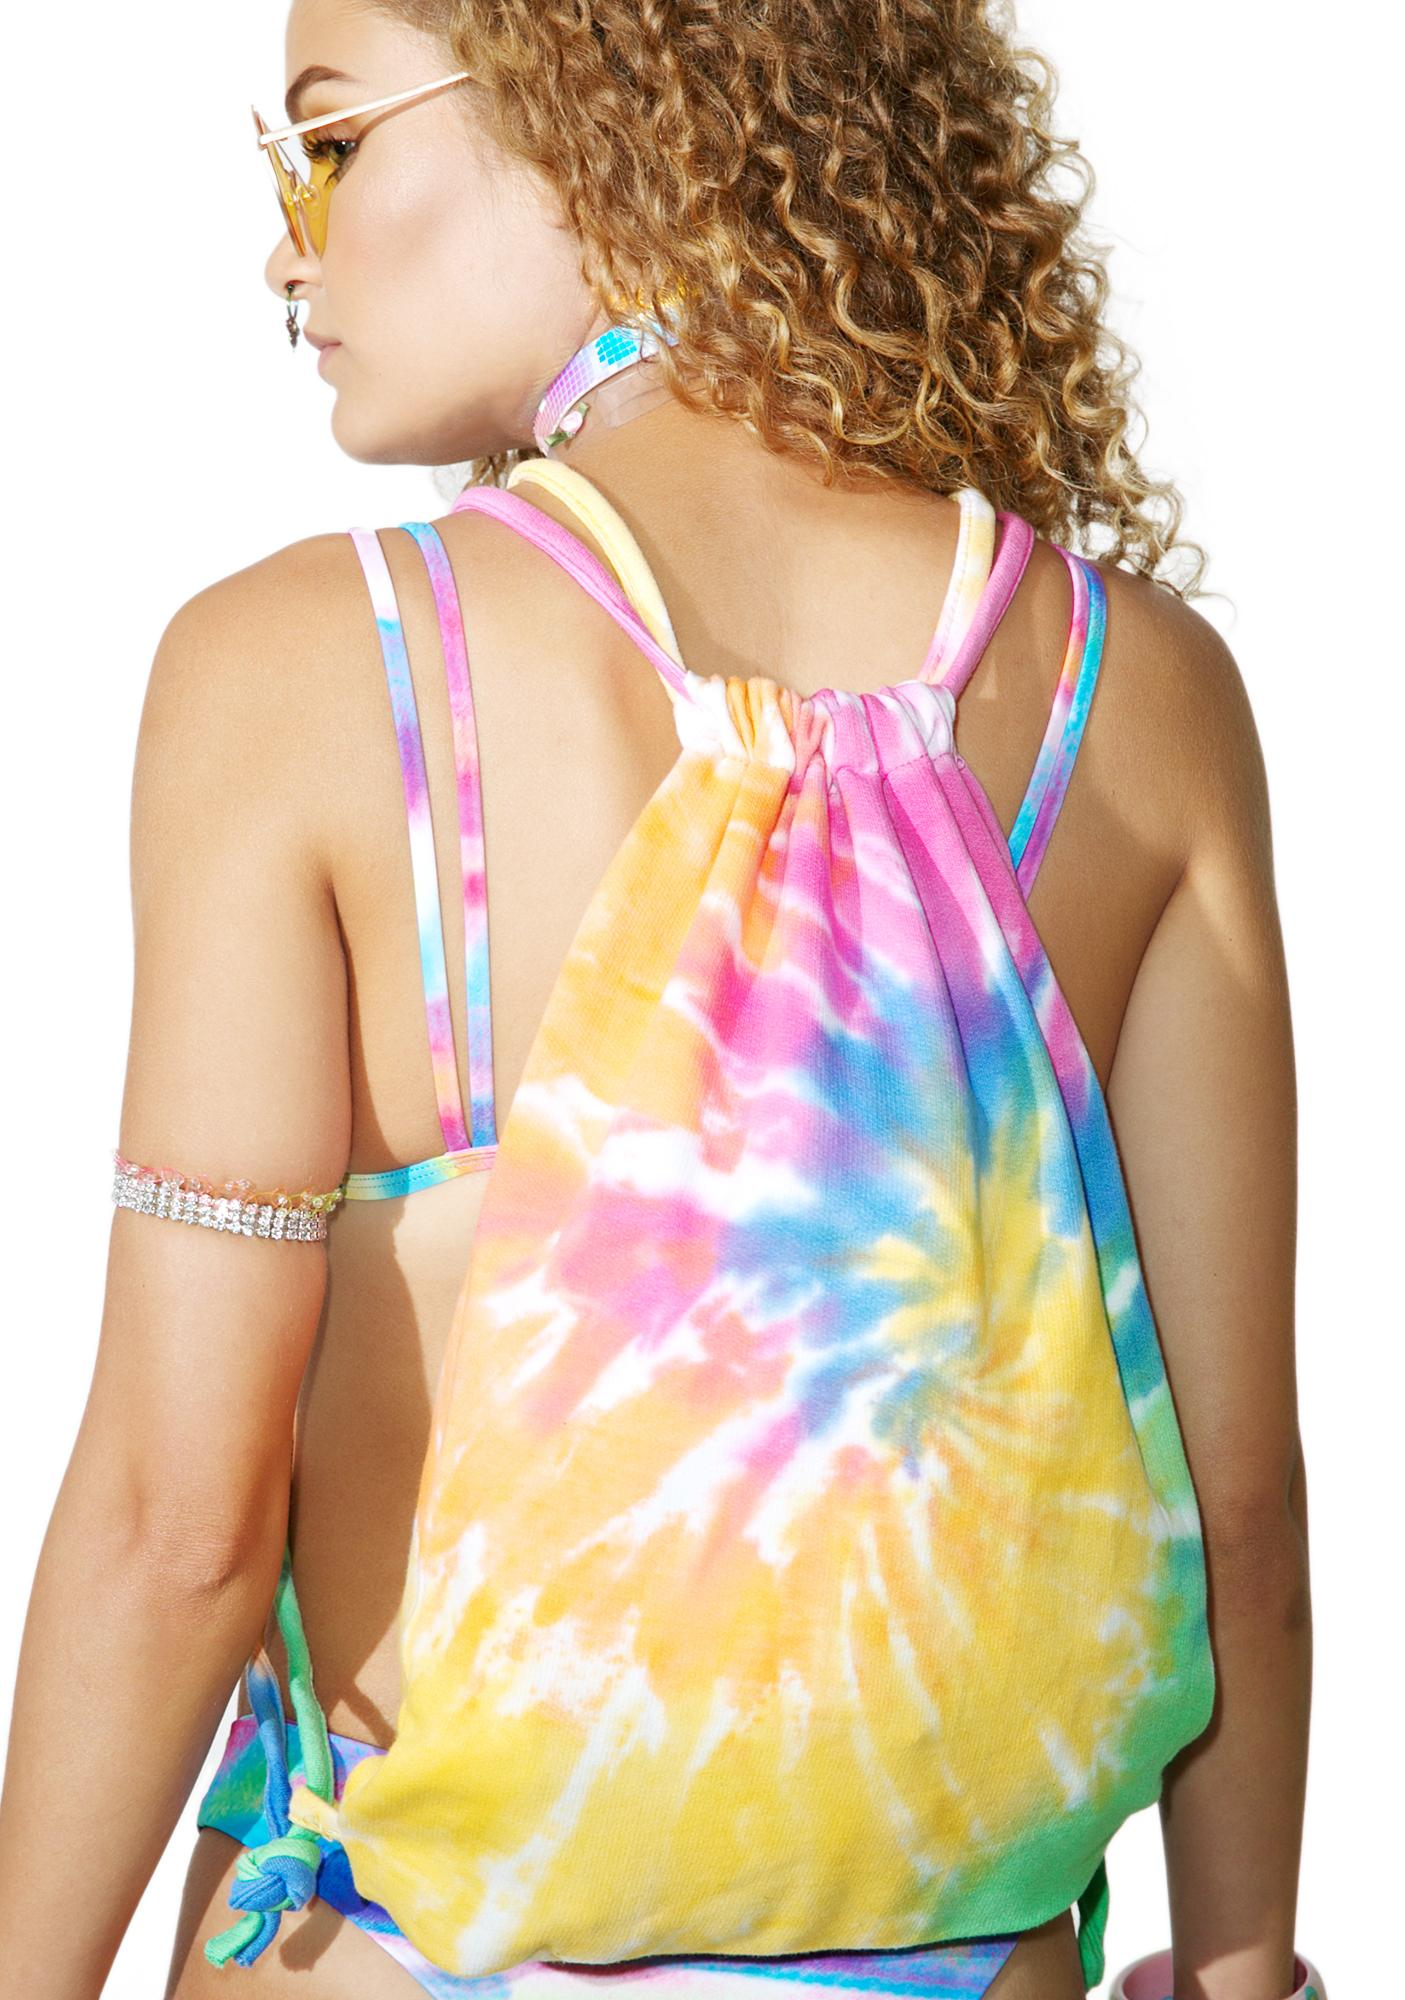 Radical Rainbow Tie Dye Backpack